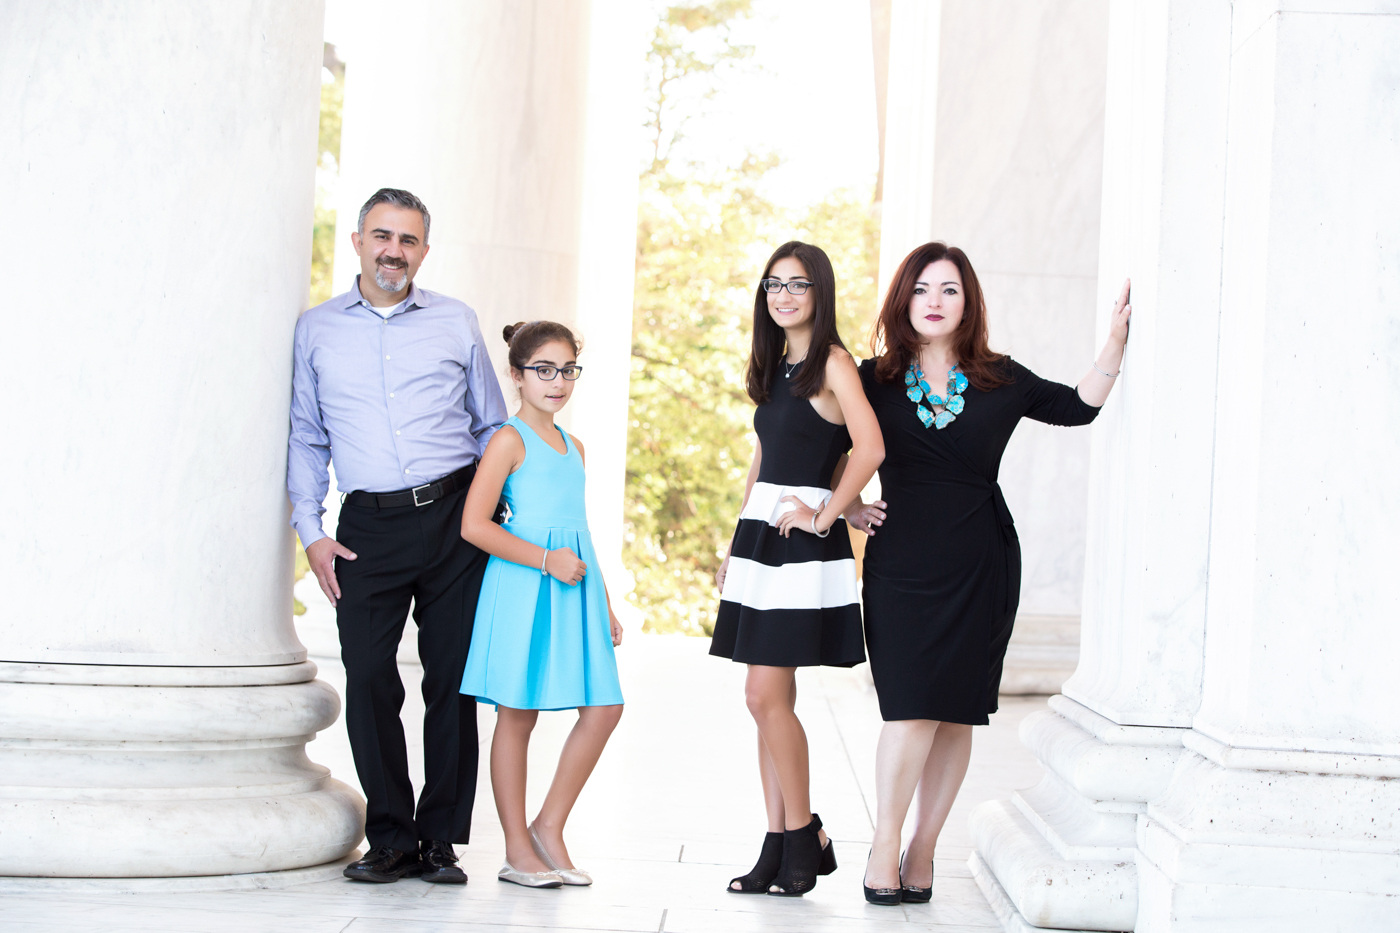 early-fall-family-shoot-in-washington-dc-ksenia-pro-photography-12